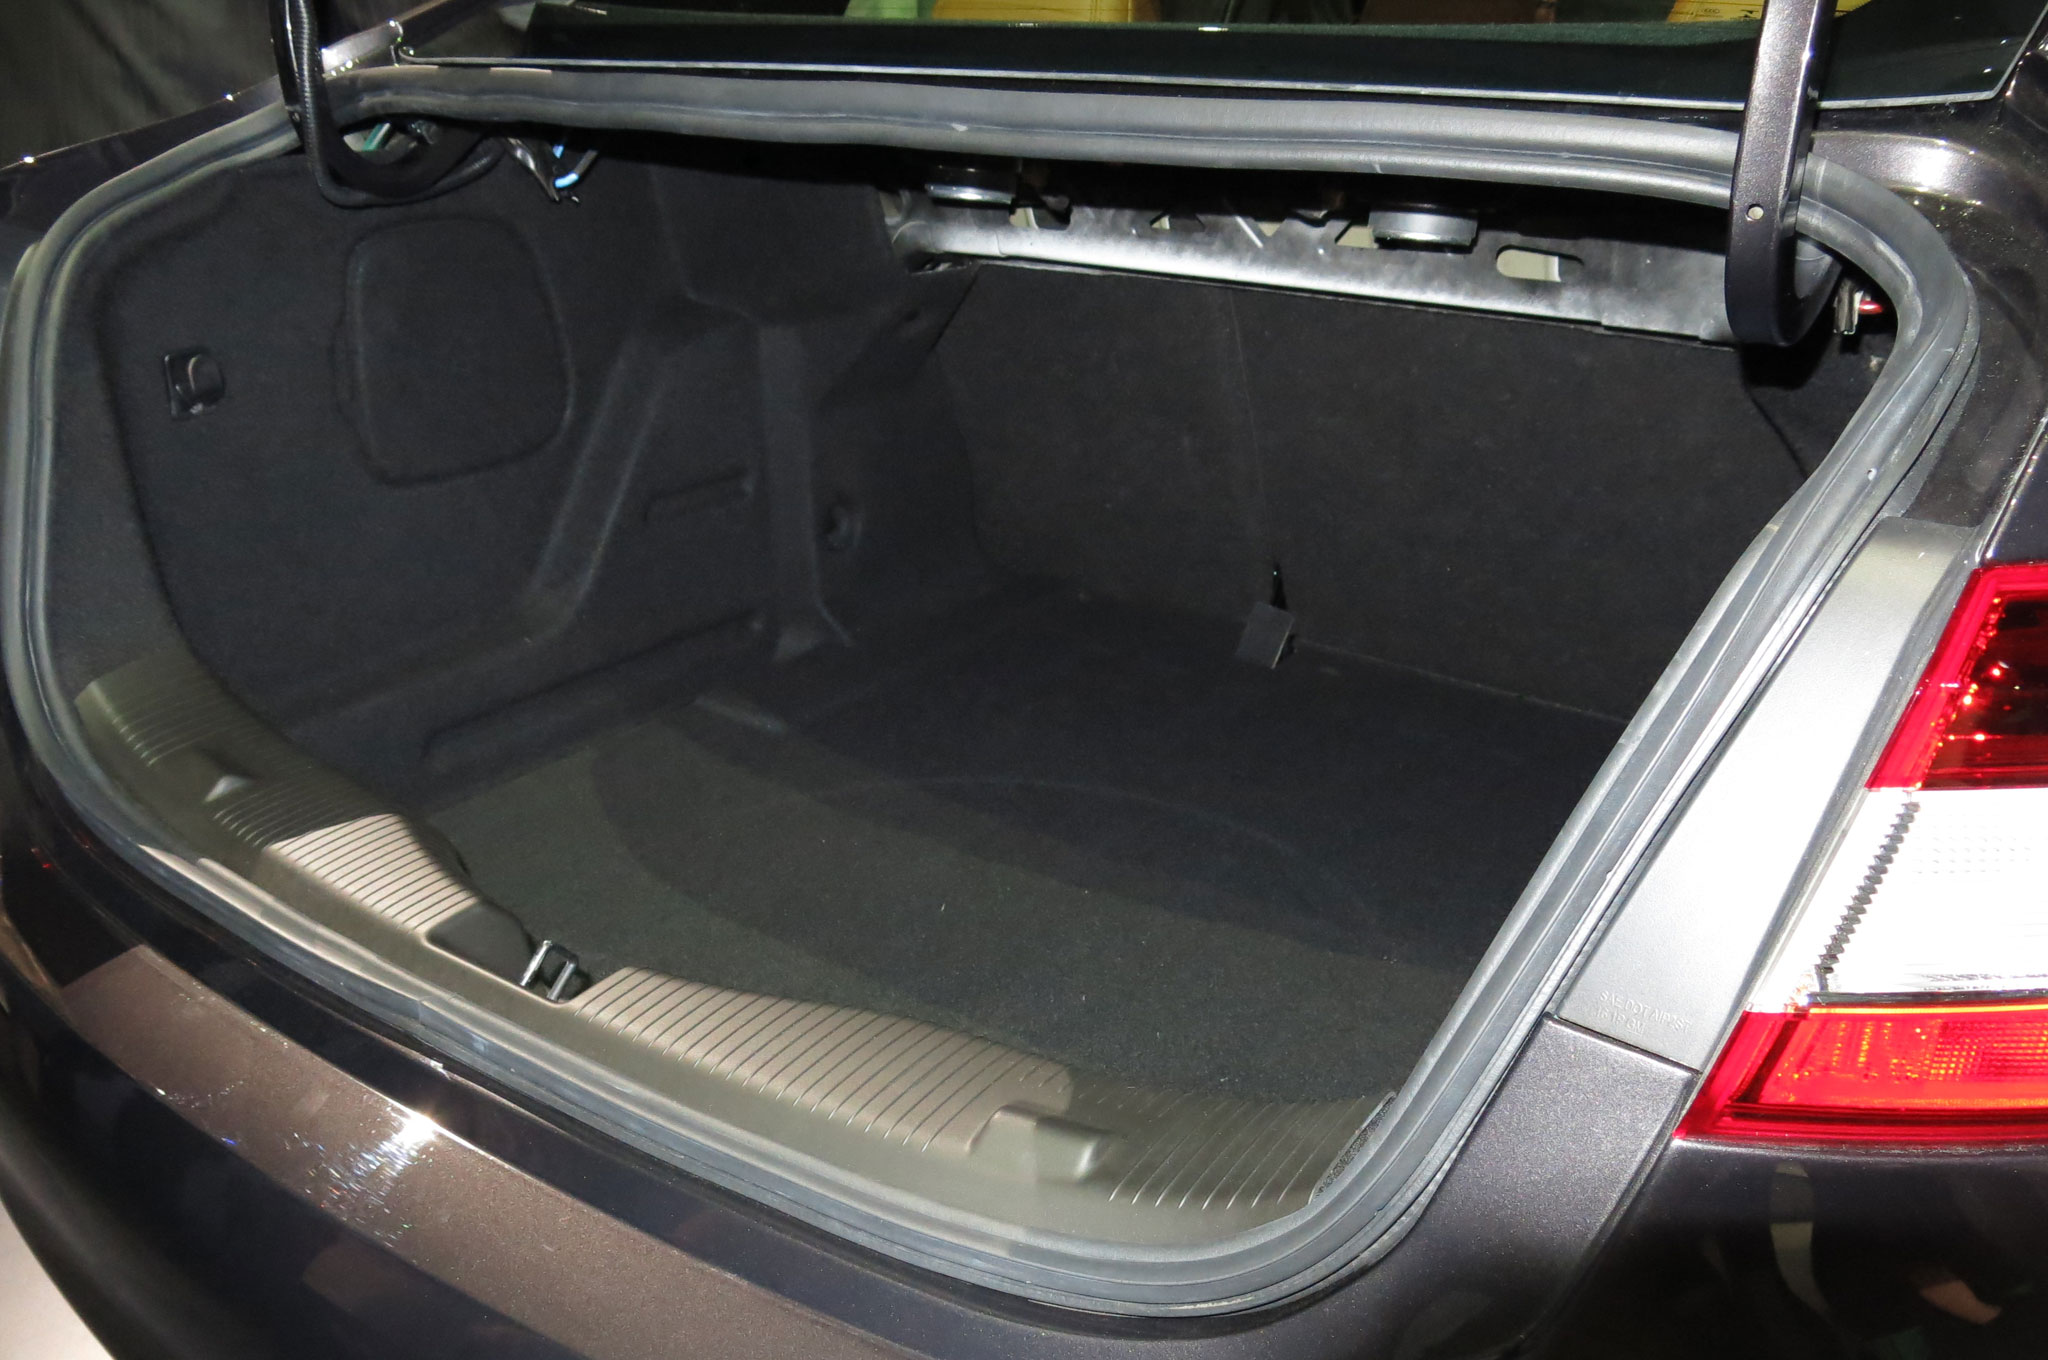 2016 chevrolet cruze is lighter and more spacious Trunk Room with Sports Cars show more